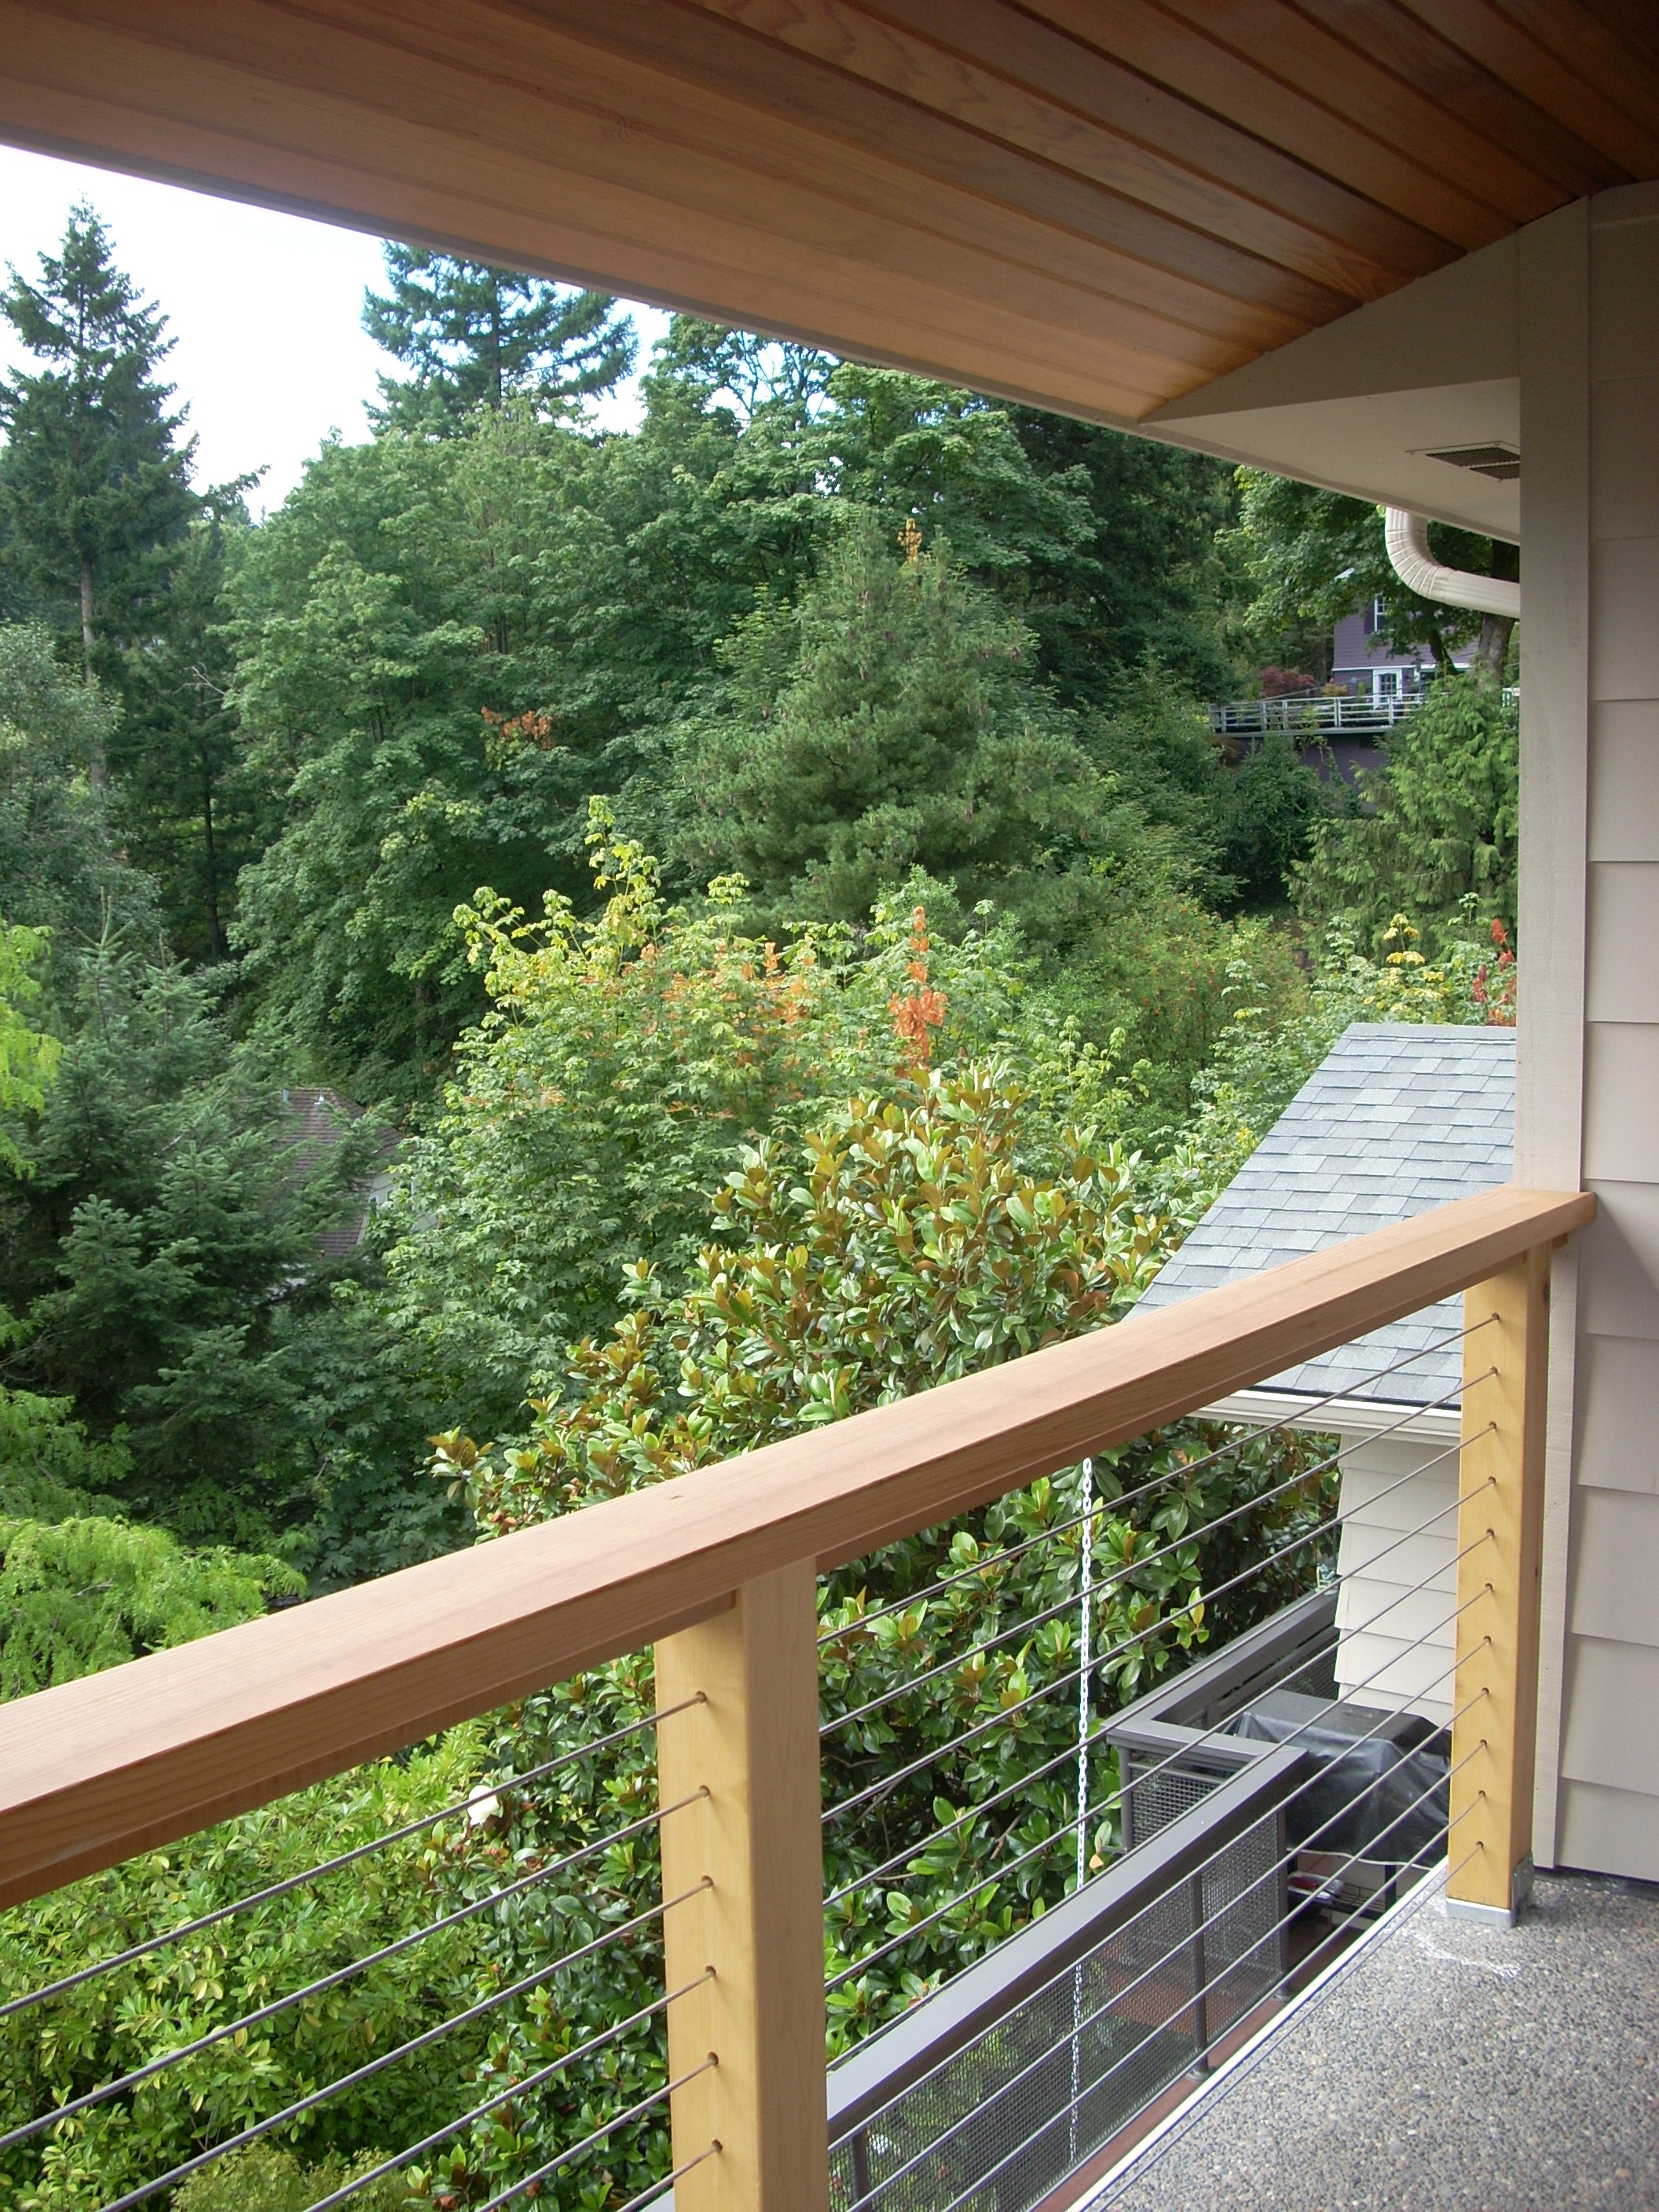 Adding a balcony to a house - A Balcony Facing A Wooded Area Has The Natural Advantages Of View And Privacy Combined